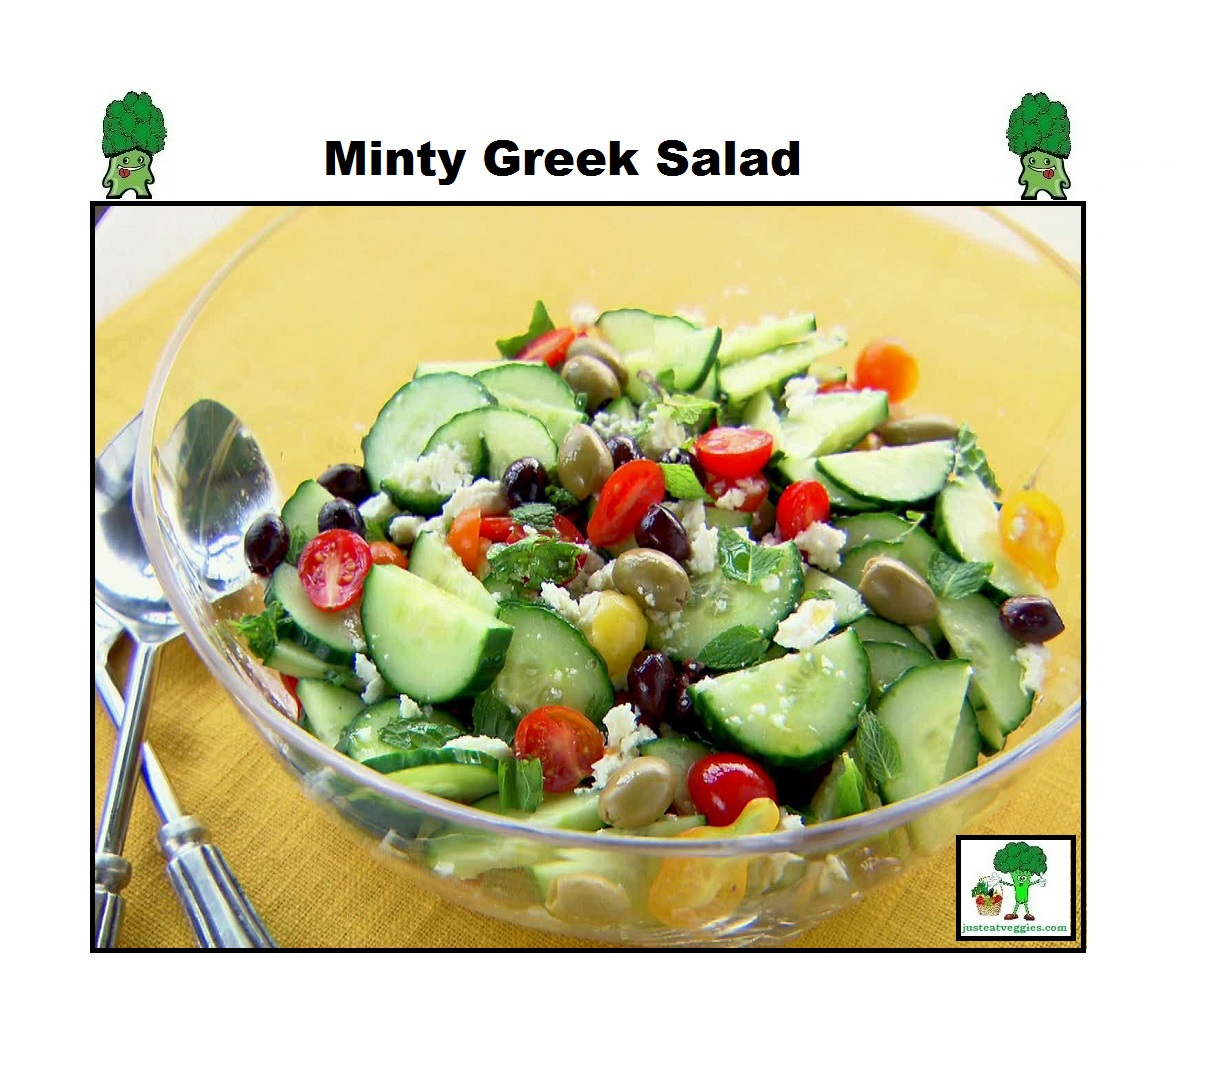 Minty Greek Salad